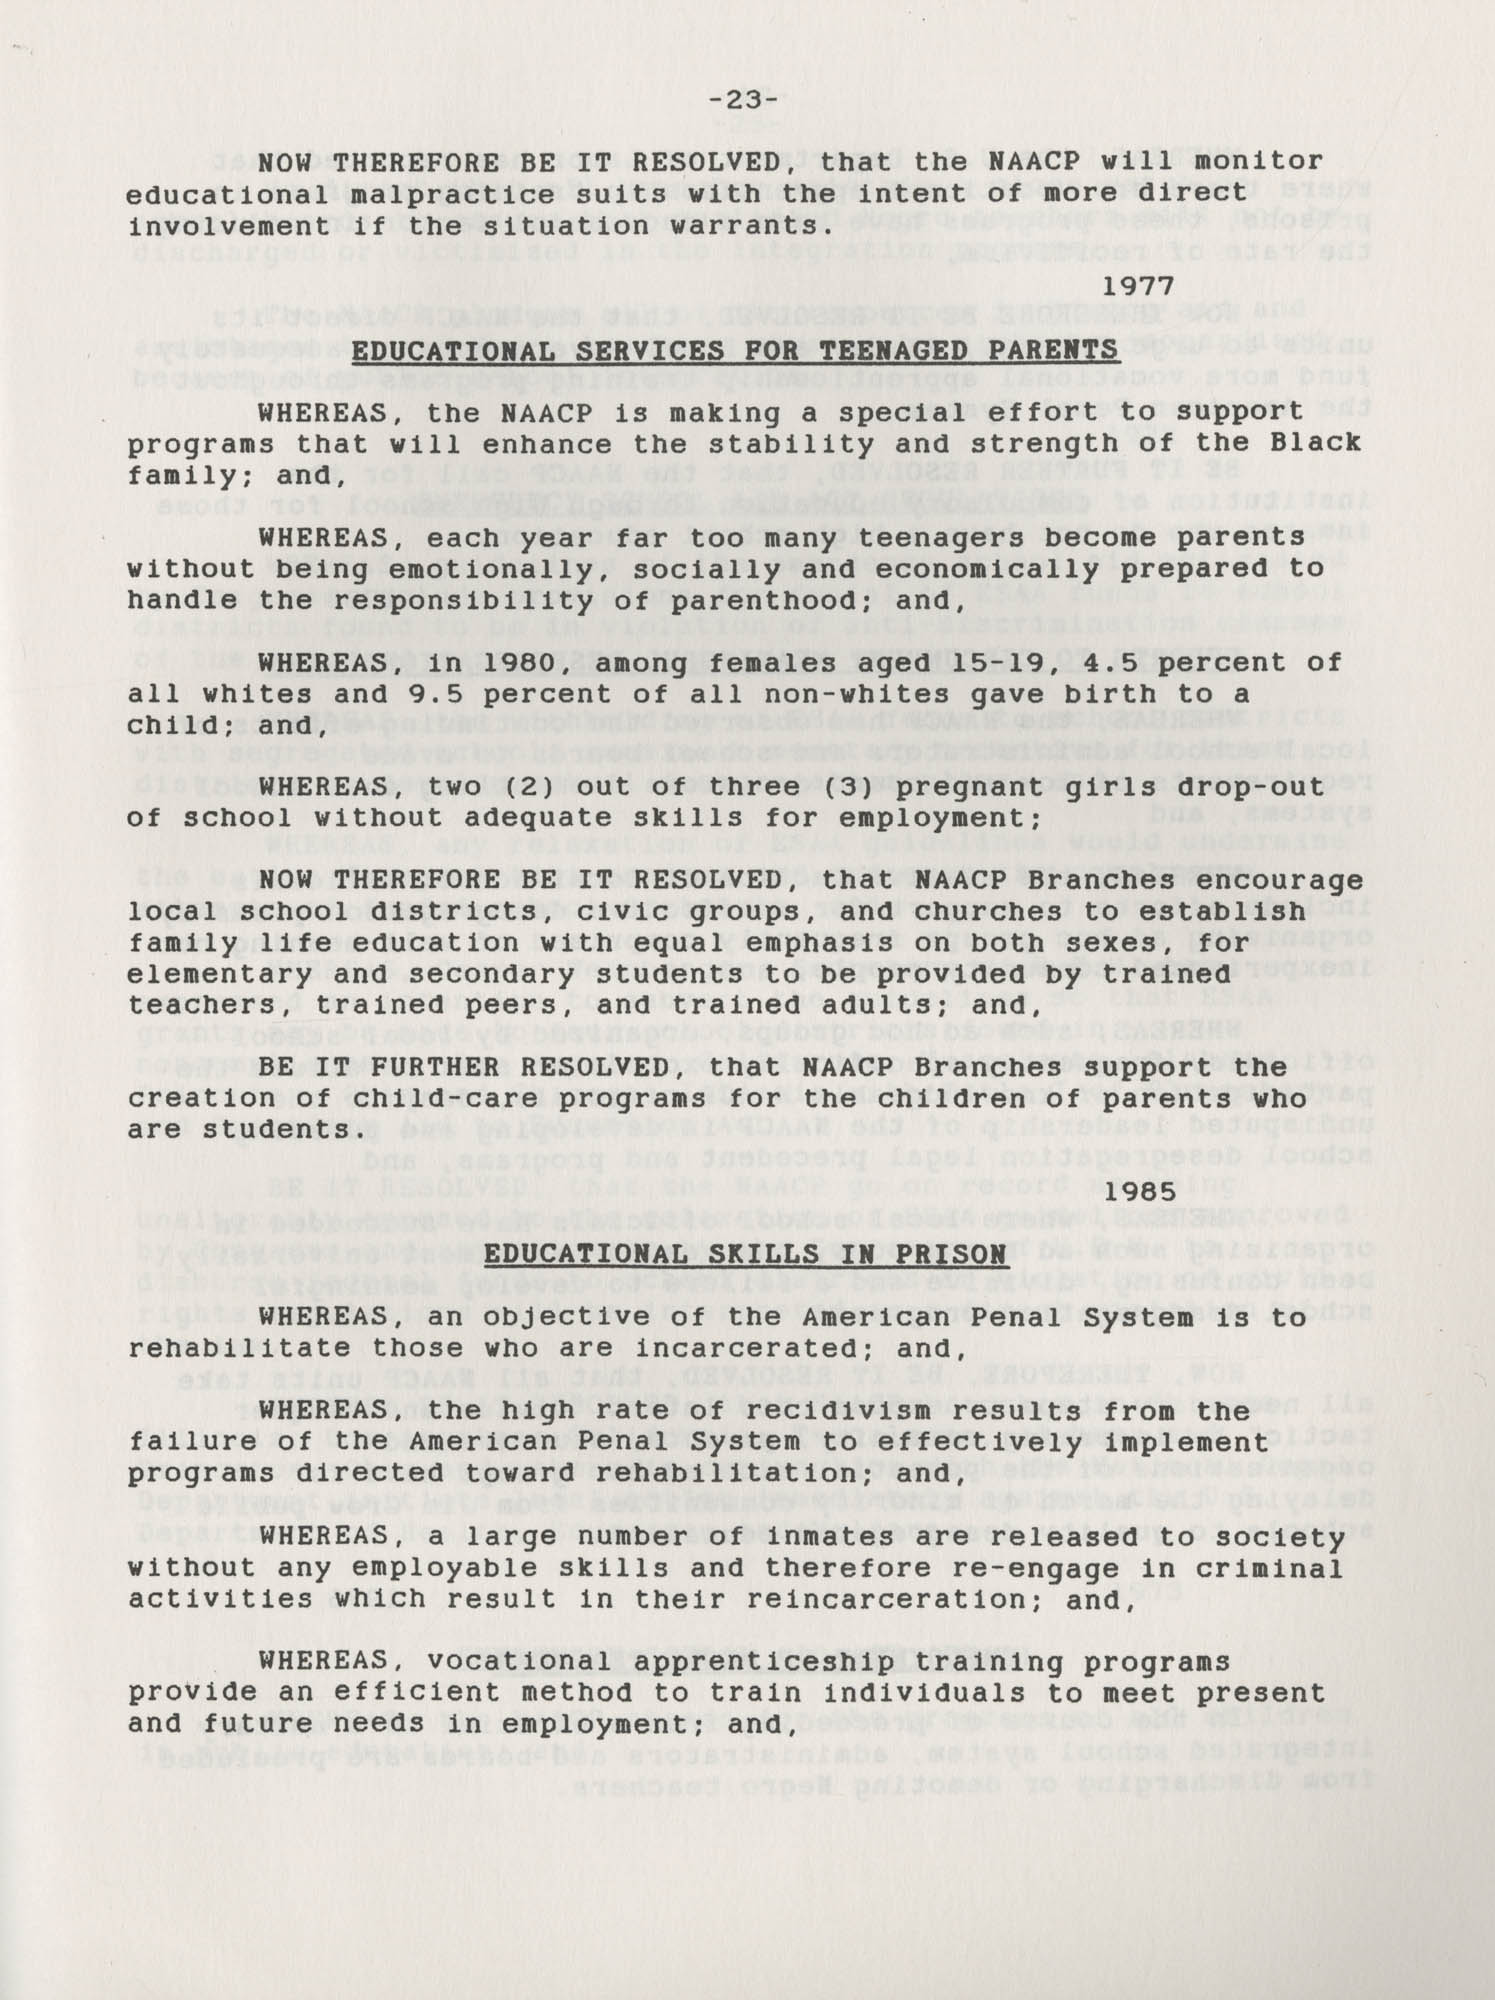 NAACP Resolutions on Education, 1970-1989, Index to Education Resolutions, Page 23